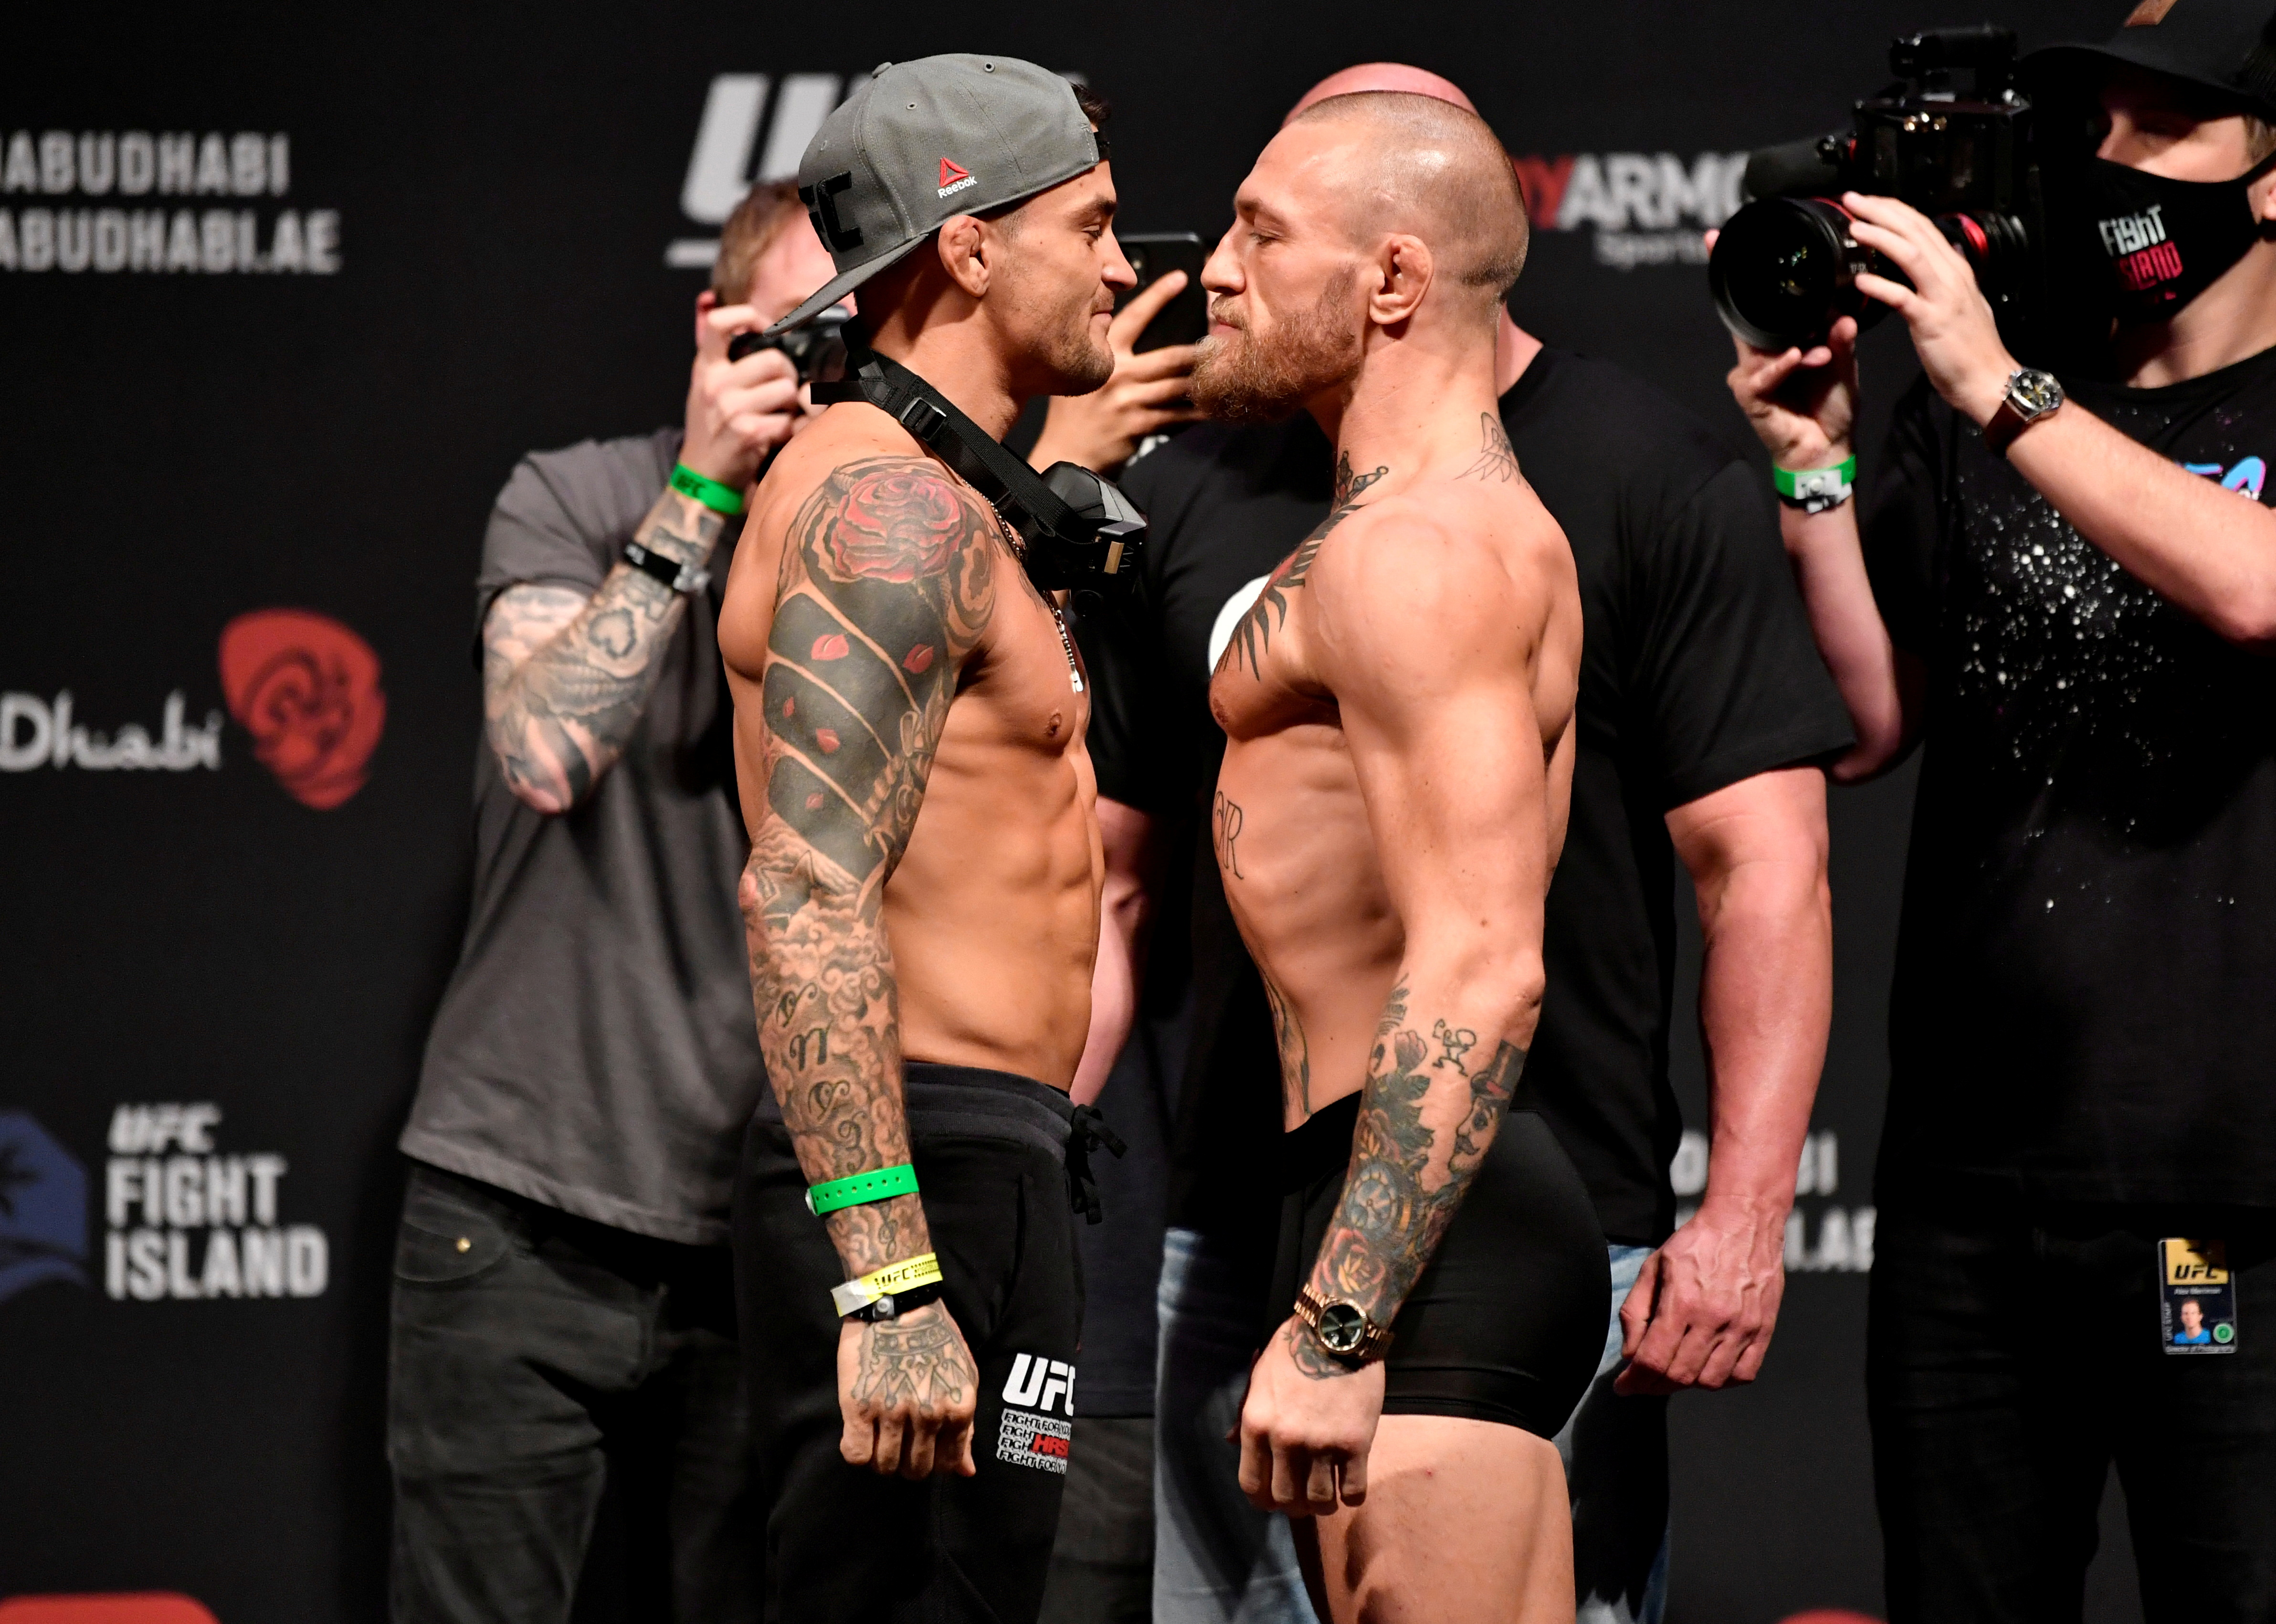 Jan 22, 2021; Abu Dhabi, UNITED ARAB EMIRATES;   Dustin Poirier and Conor McGregor of Ireland face off during the UFC 257 weigh-in at Etihad Arena on UFC Fight Island on January 22, 2021 in Abu Dhabi, United Arab Emirates. Mandatory Credit: Jeff Bottari/Handout Photo via USA TODAY Sports/File Photo